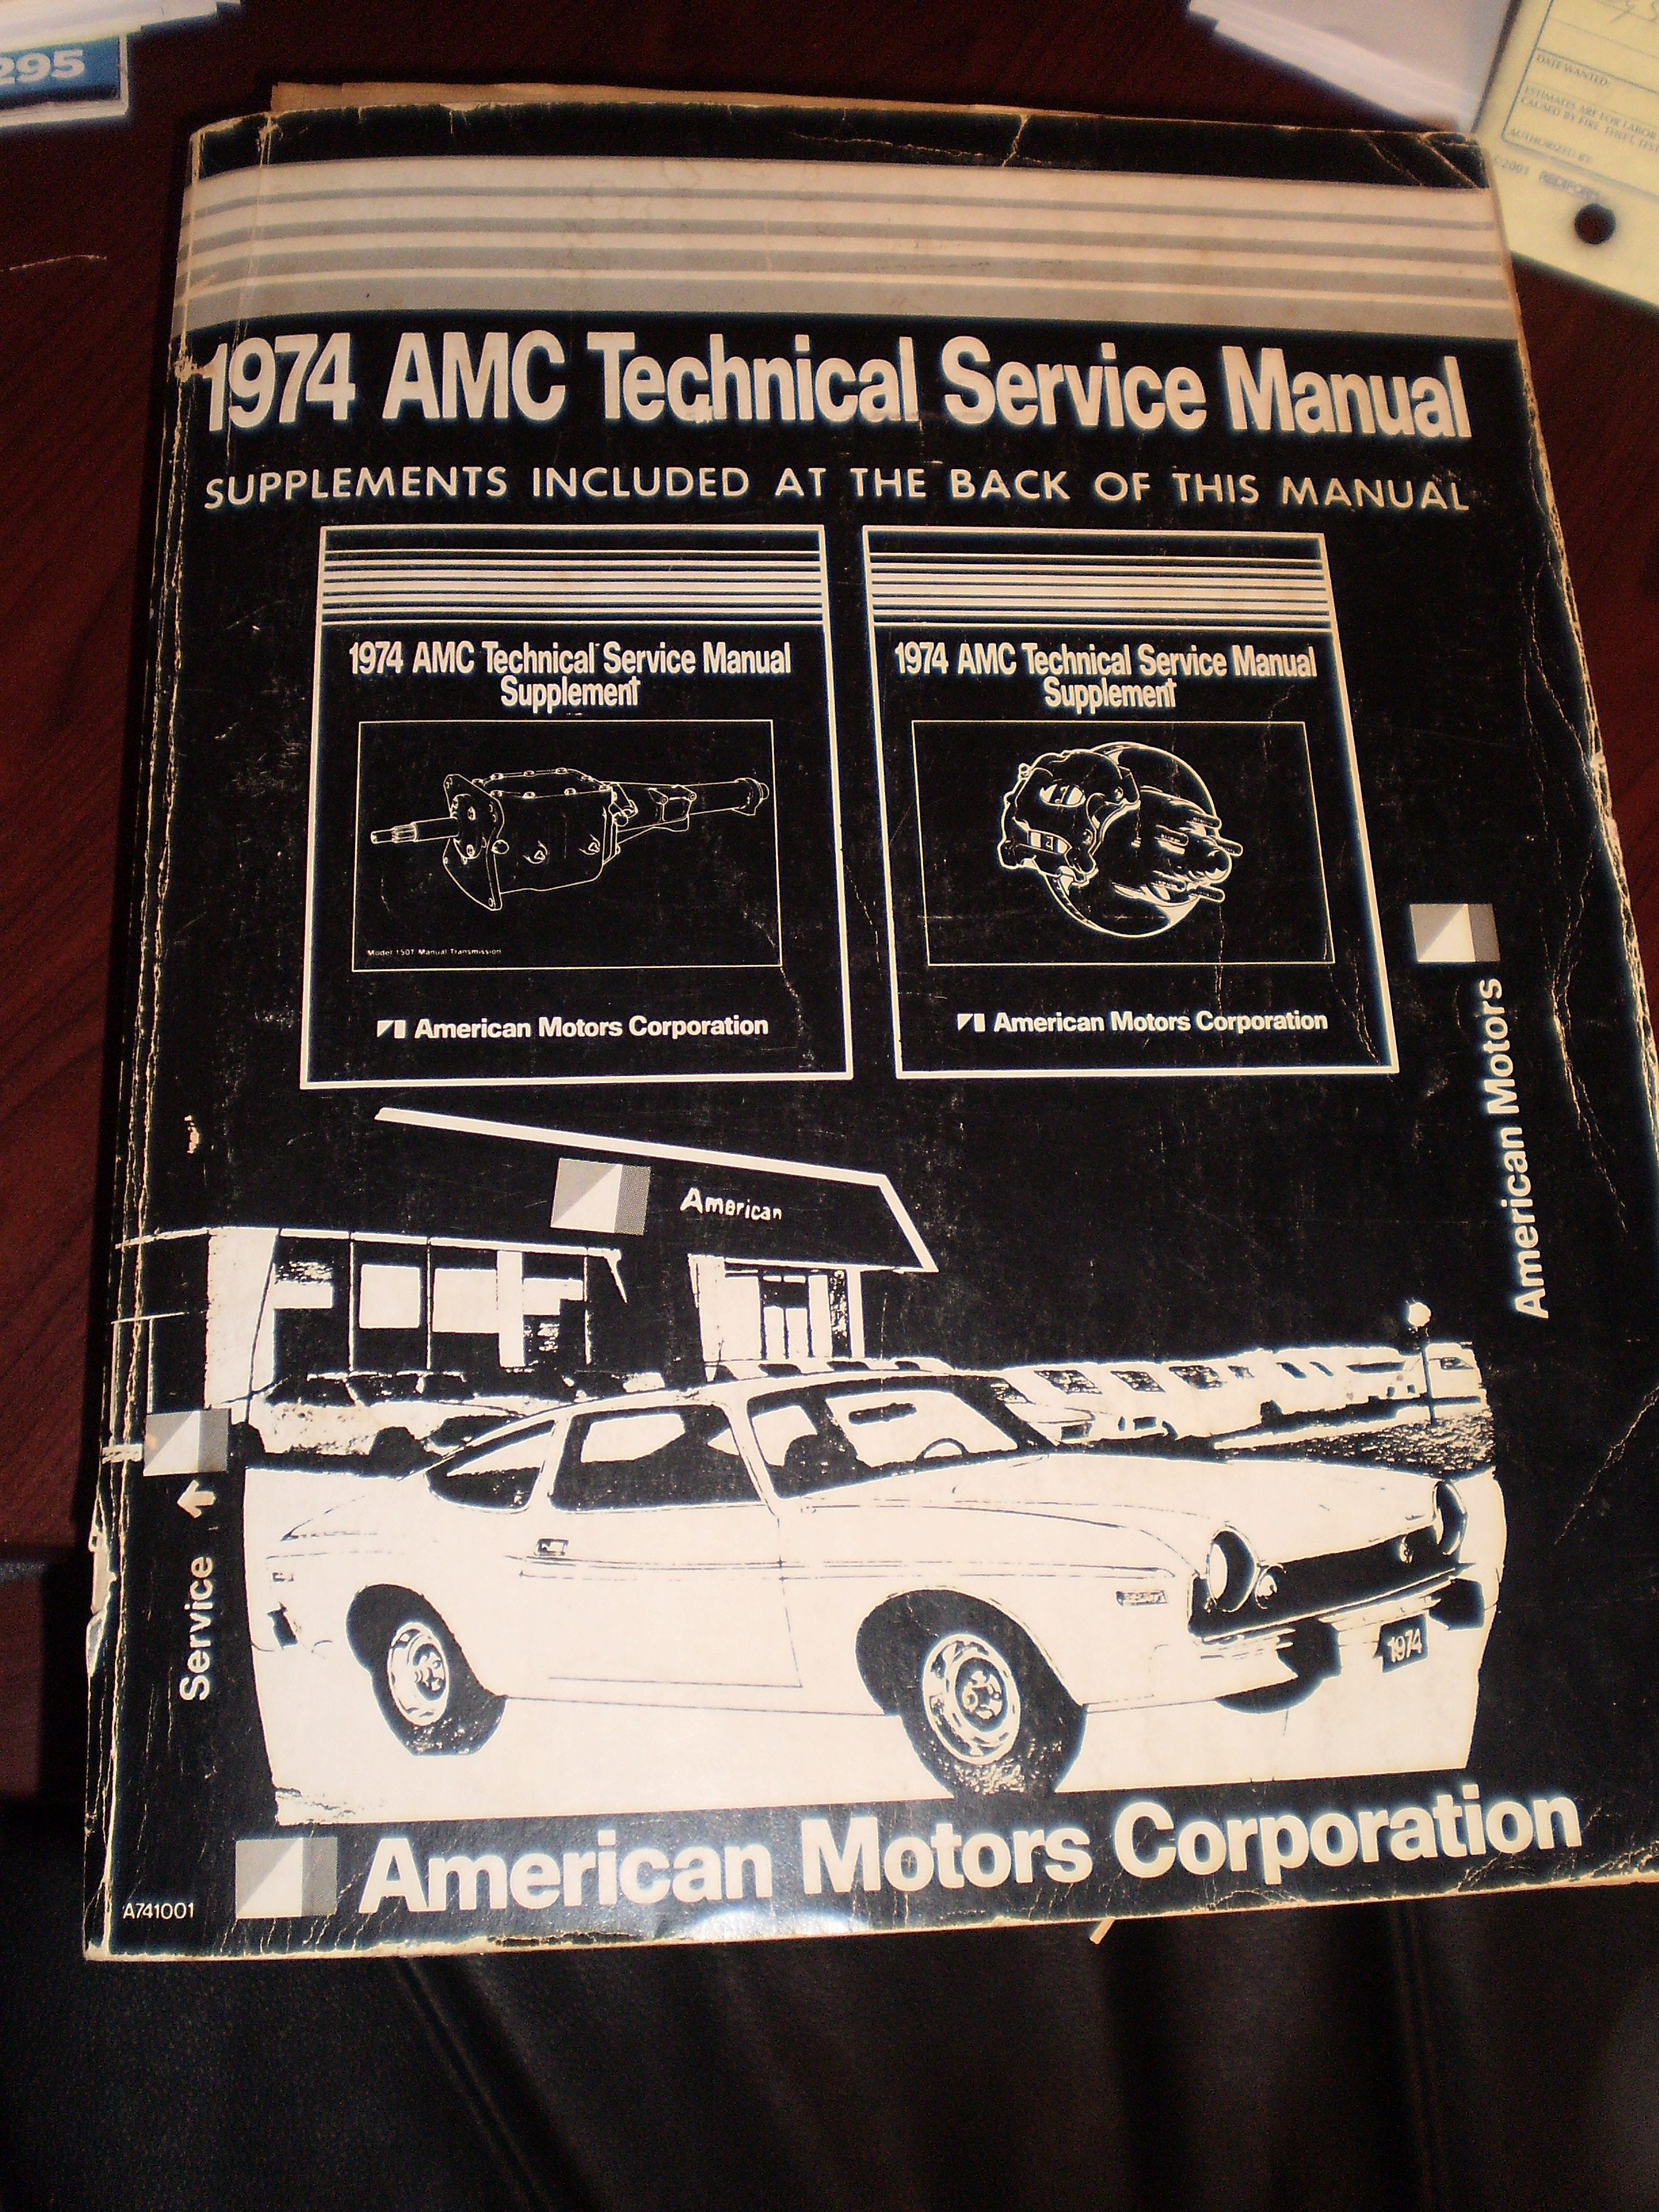 1968 Amc Amx Starter Wiring Diagram Diagrams As Well 1969 Also 1973 Hor Ford Fairlane 1966 Rambler American